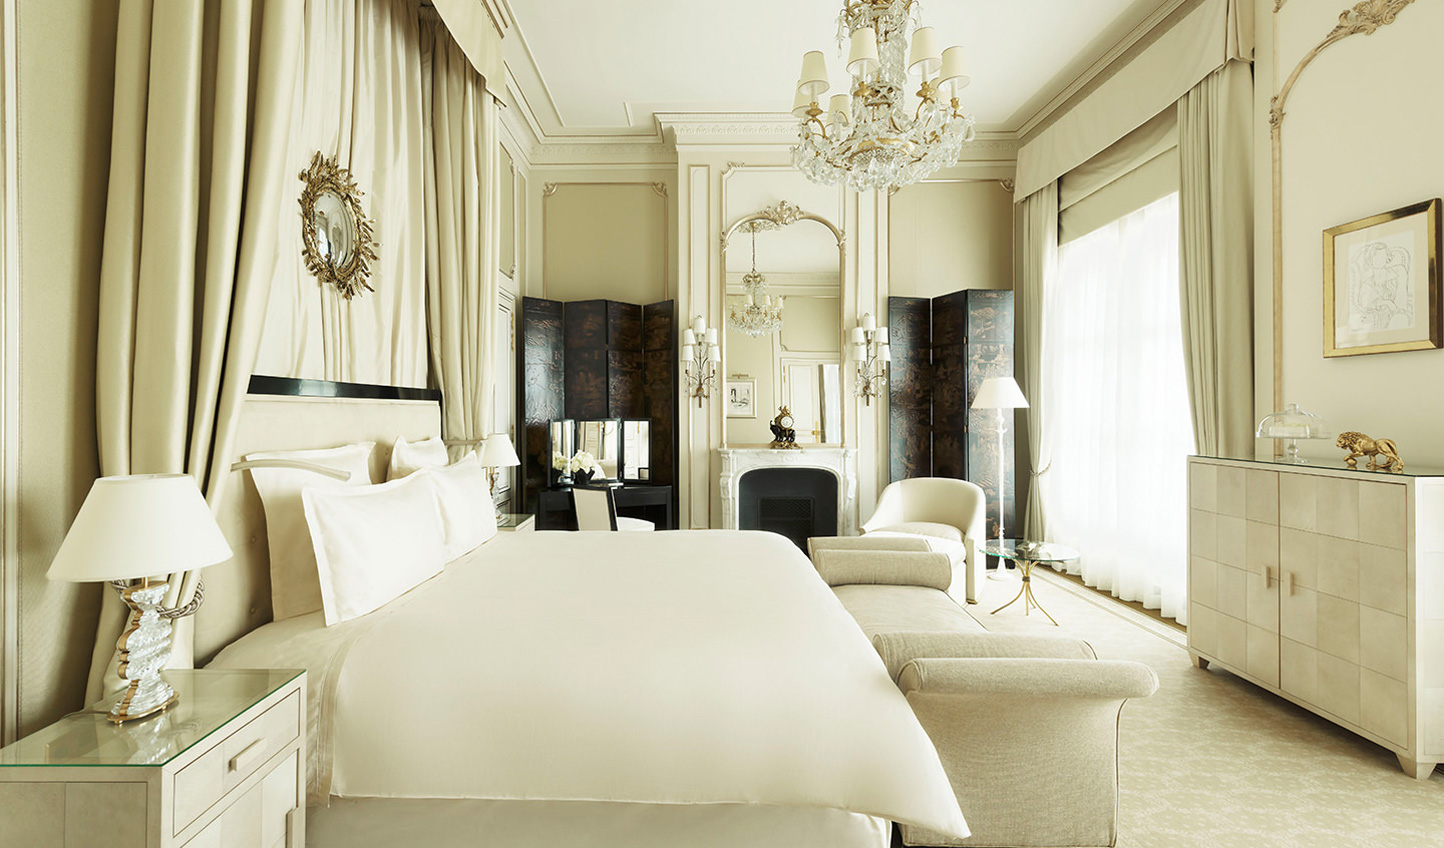 The Ritz Paris' effortlessly stylish Chanel suite, designed and lived in by Coco Chanel herself